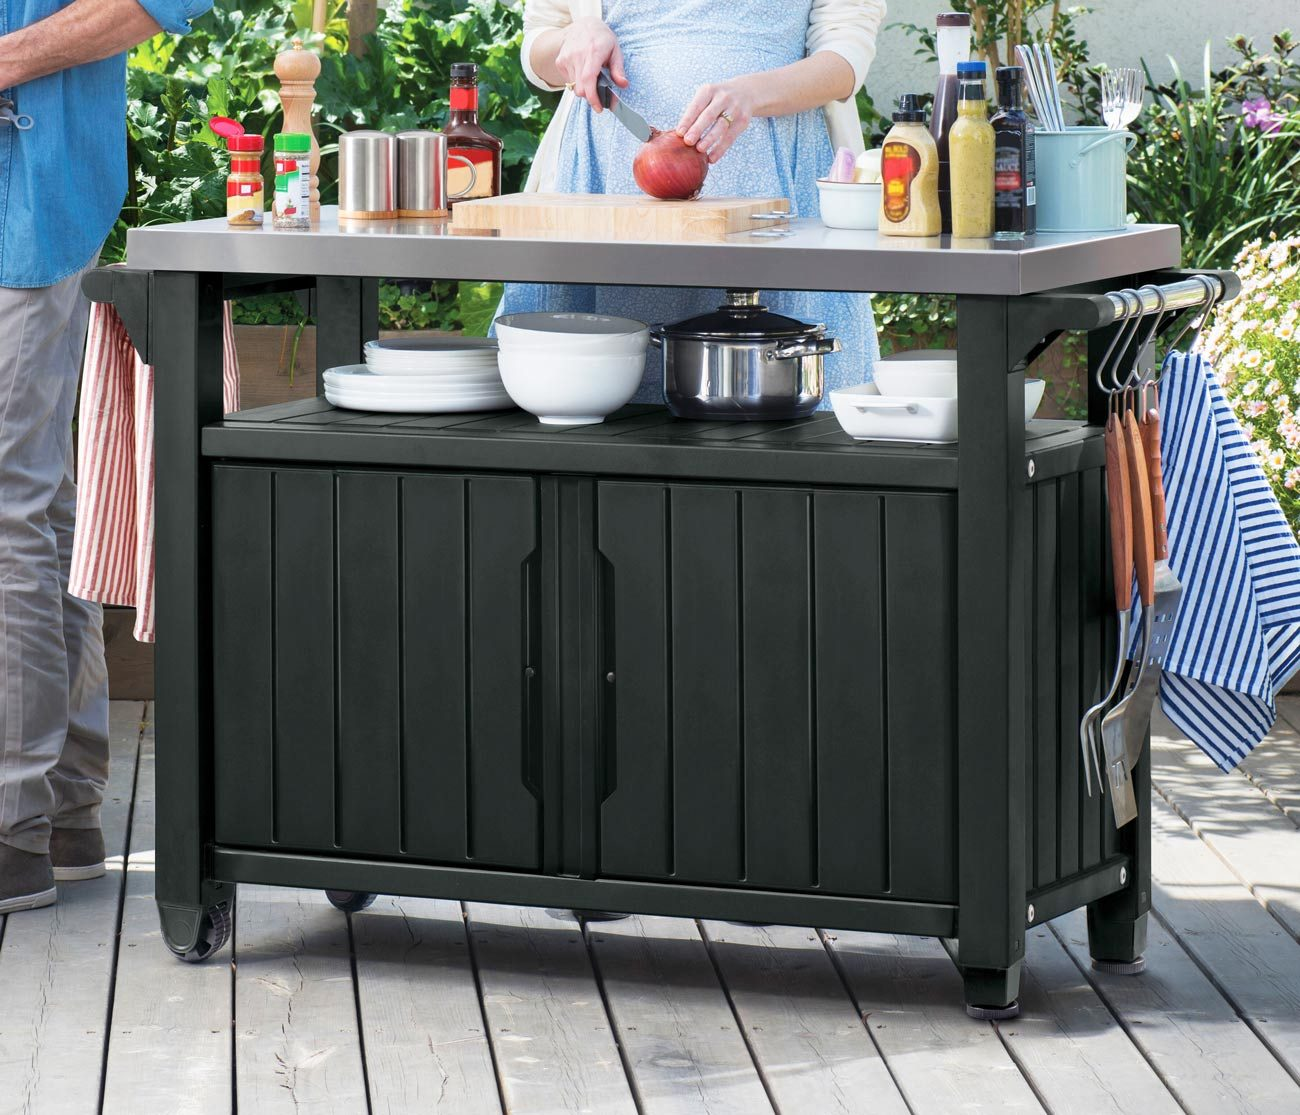 Keter Unity Bbq Storage Work Table 388 Sydney Garden Products